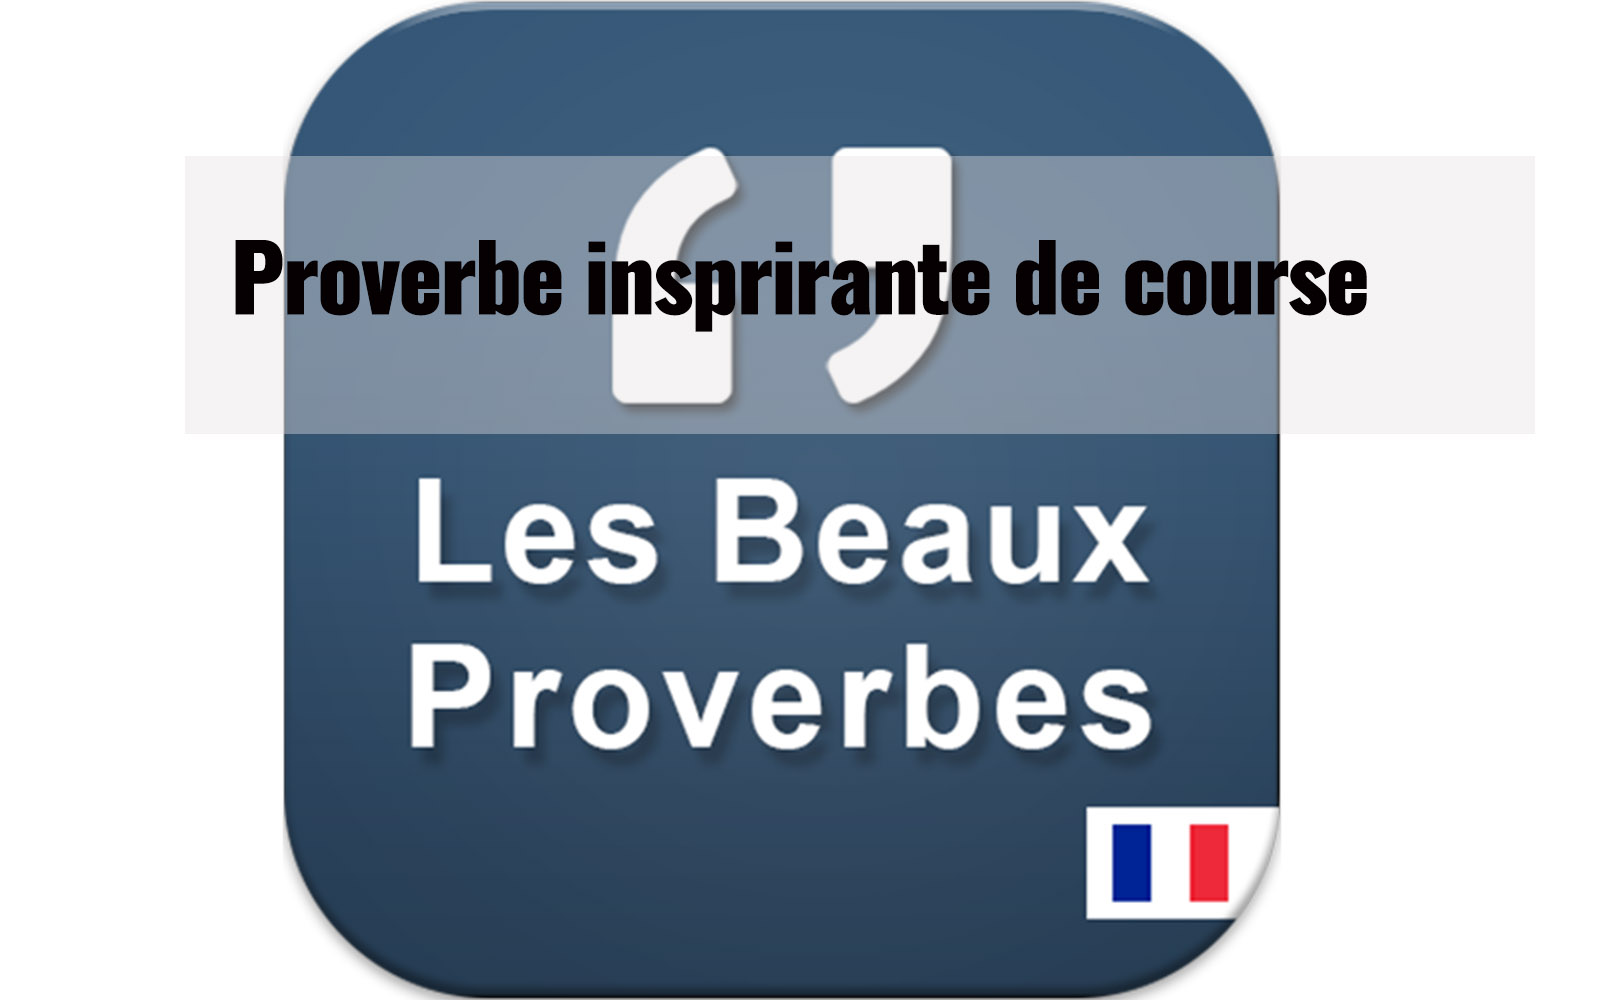 Proverbes inspirants de course